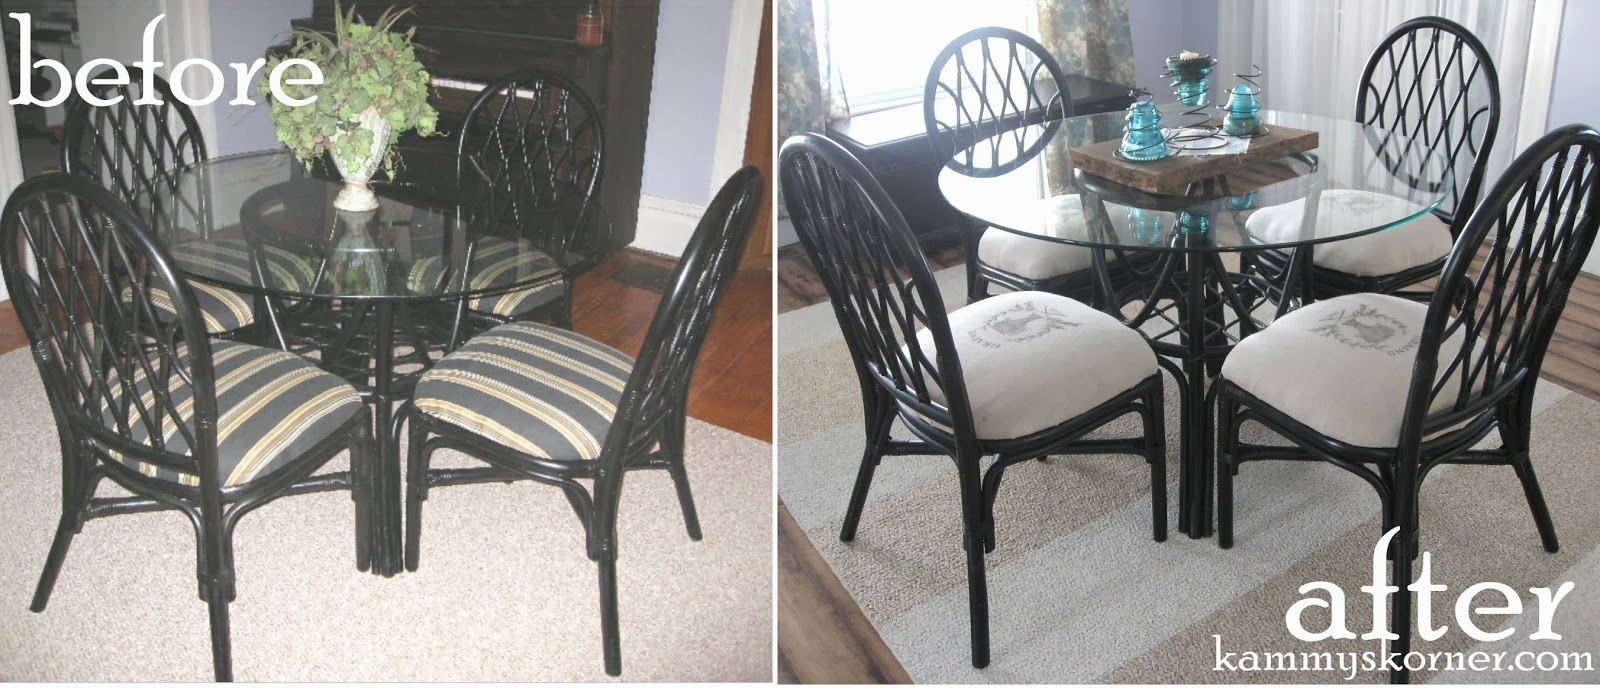 Kammys Korner Rattan Dining Chairs Makeover